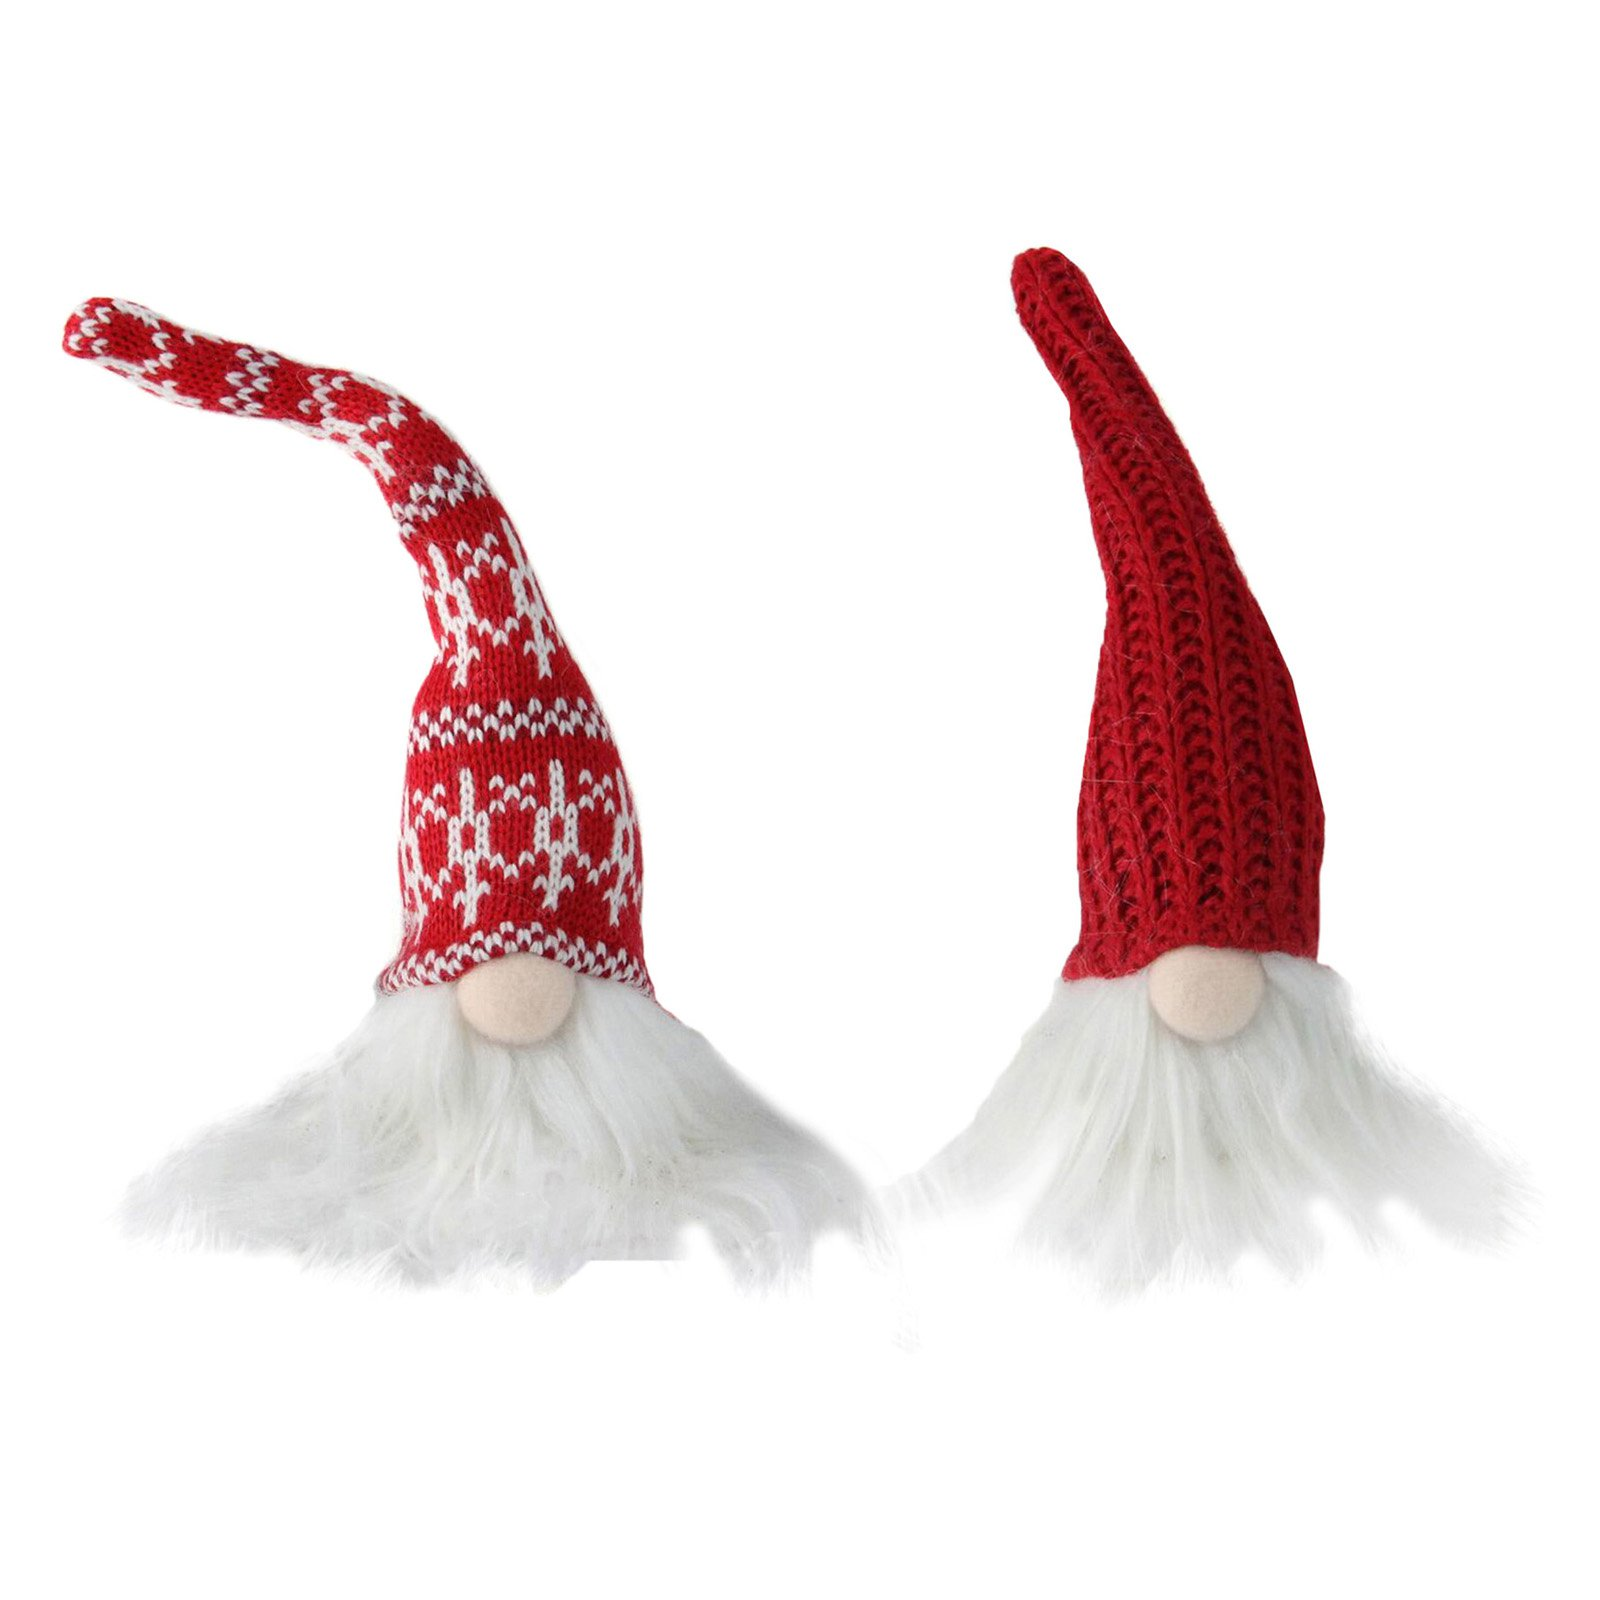 Northlight Plush Mini Gnomes in Red Cable Kit and Nordic Hats Christmas Figurine - Set of 2